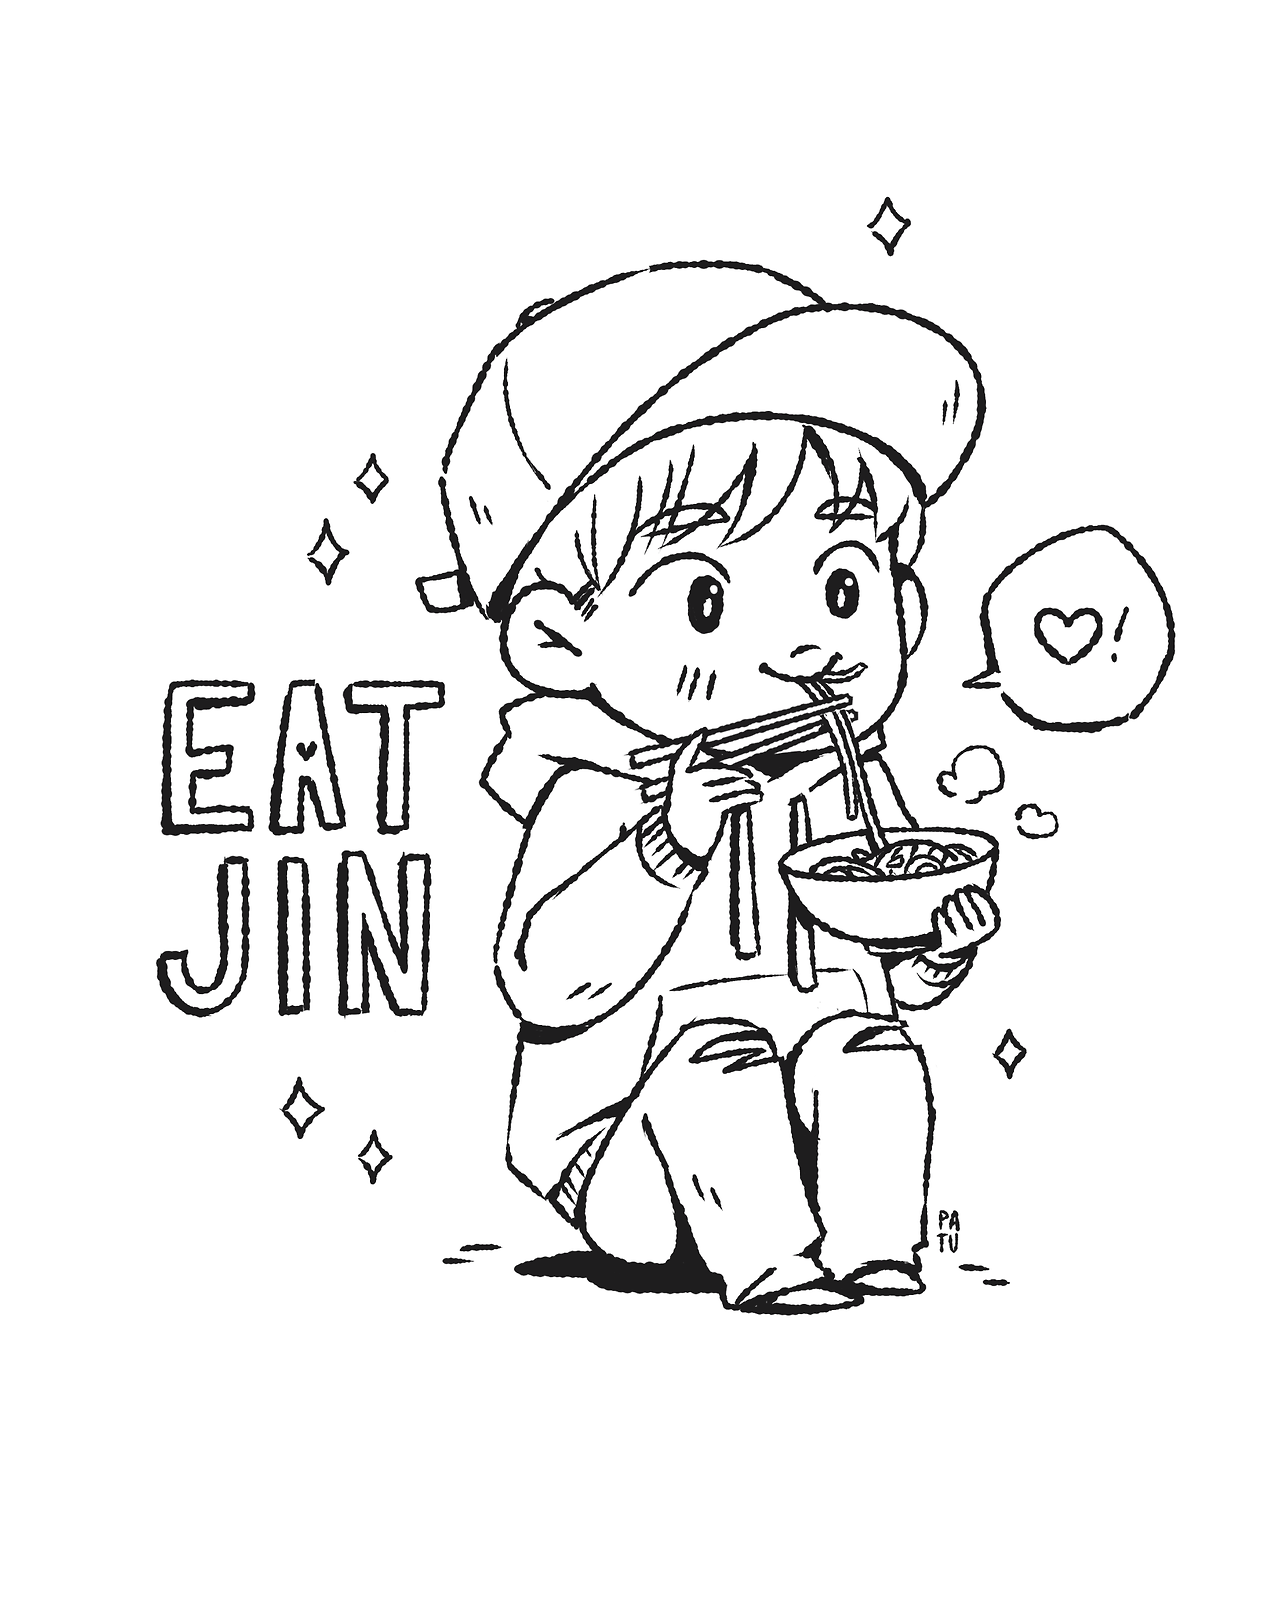 bts coloring page bts coloring pages army39s amino page coloring bts